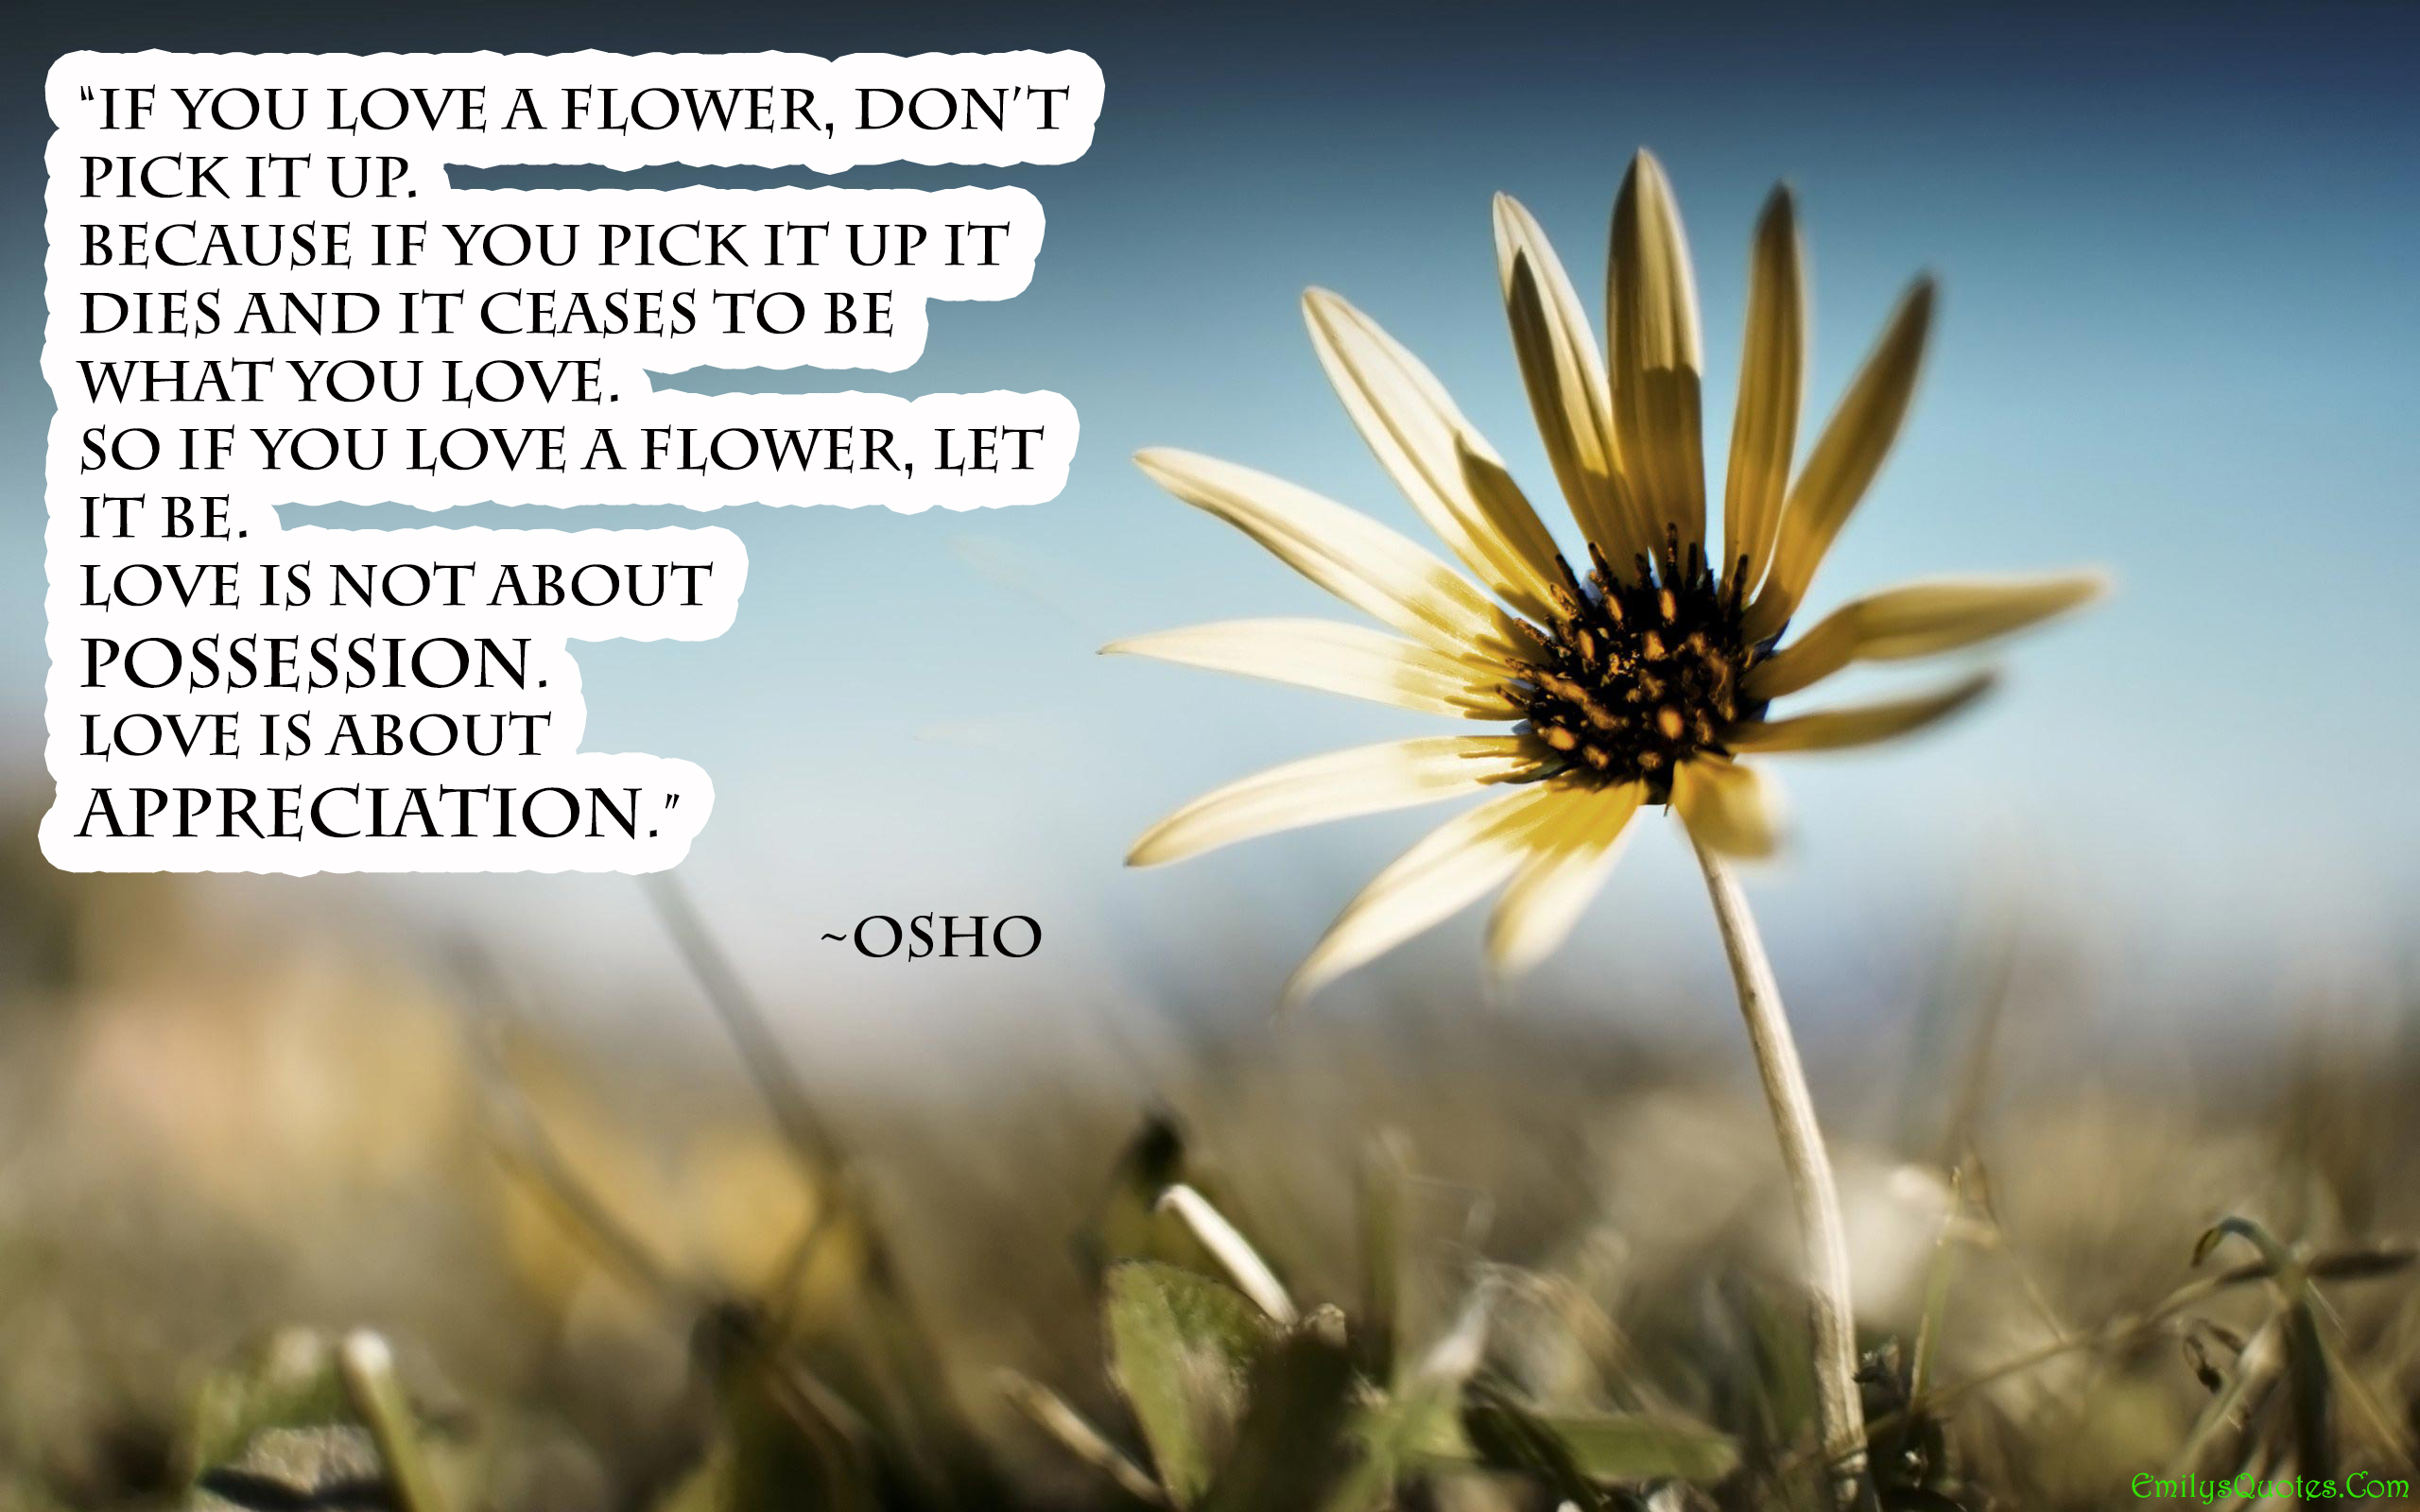 Flower And Love Quotes If You Love A Flower Don't Pick It Upbecause If You Pick It Up